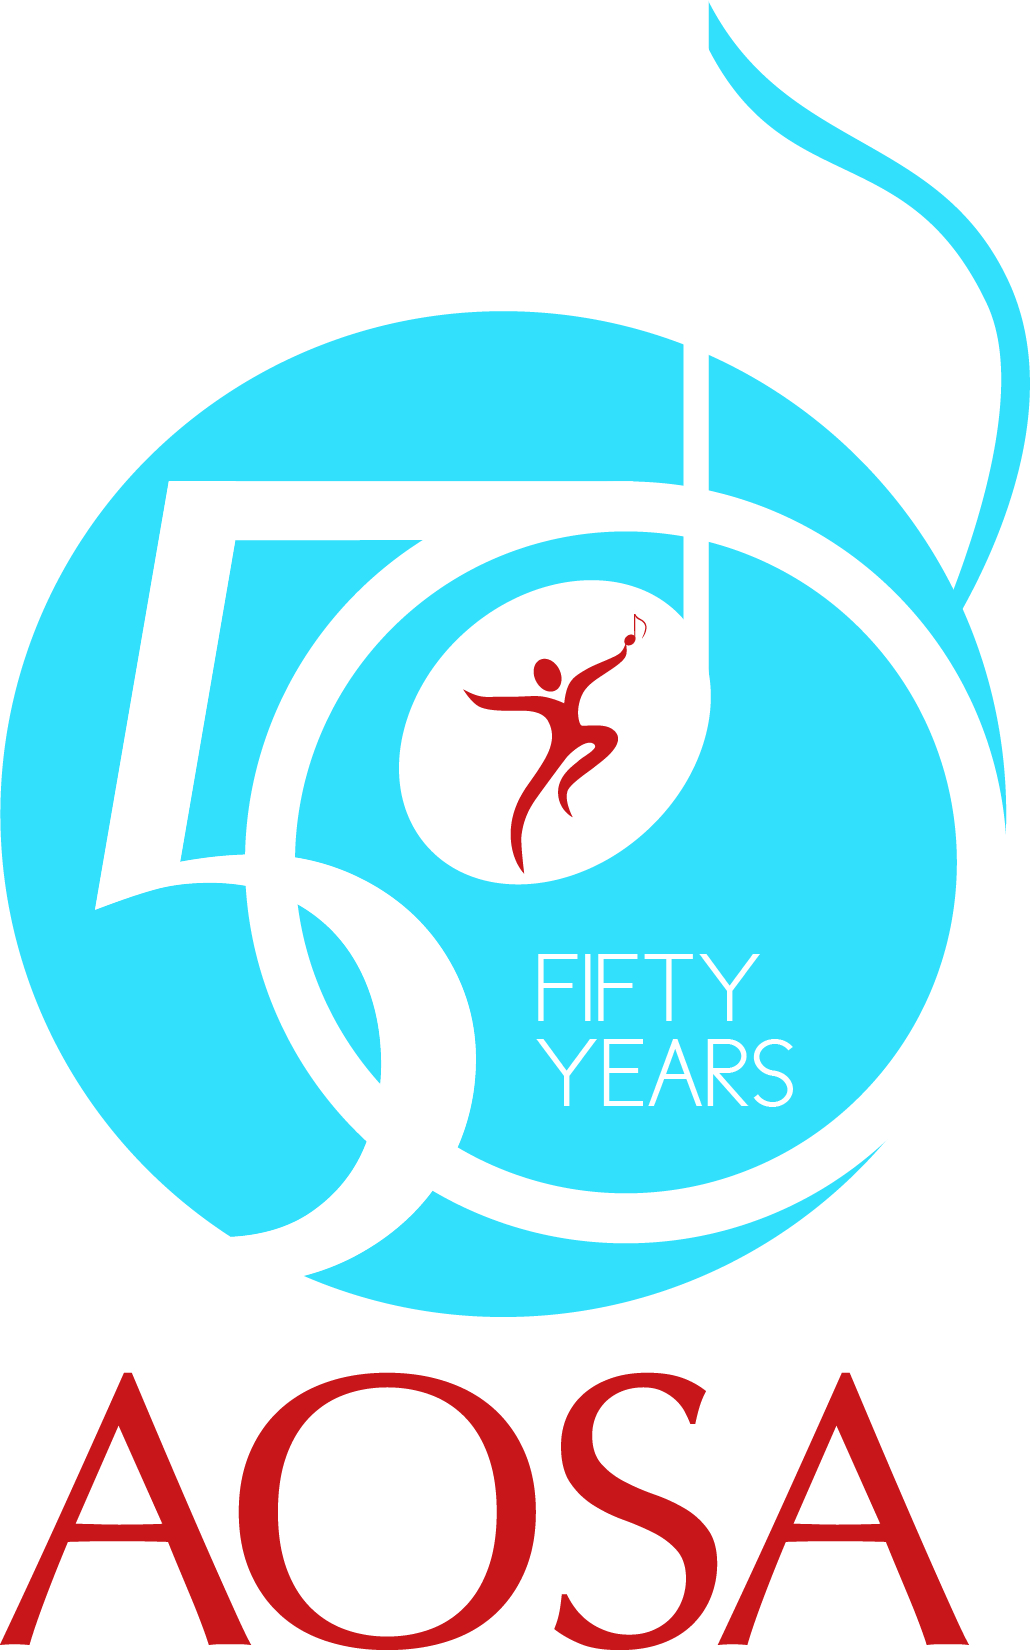 AOSA: Fifty Years